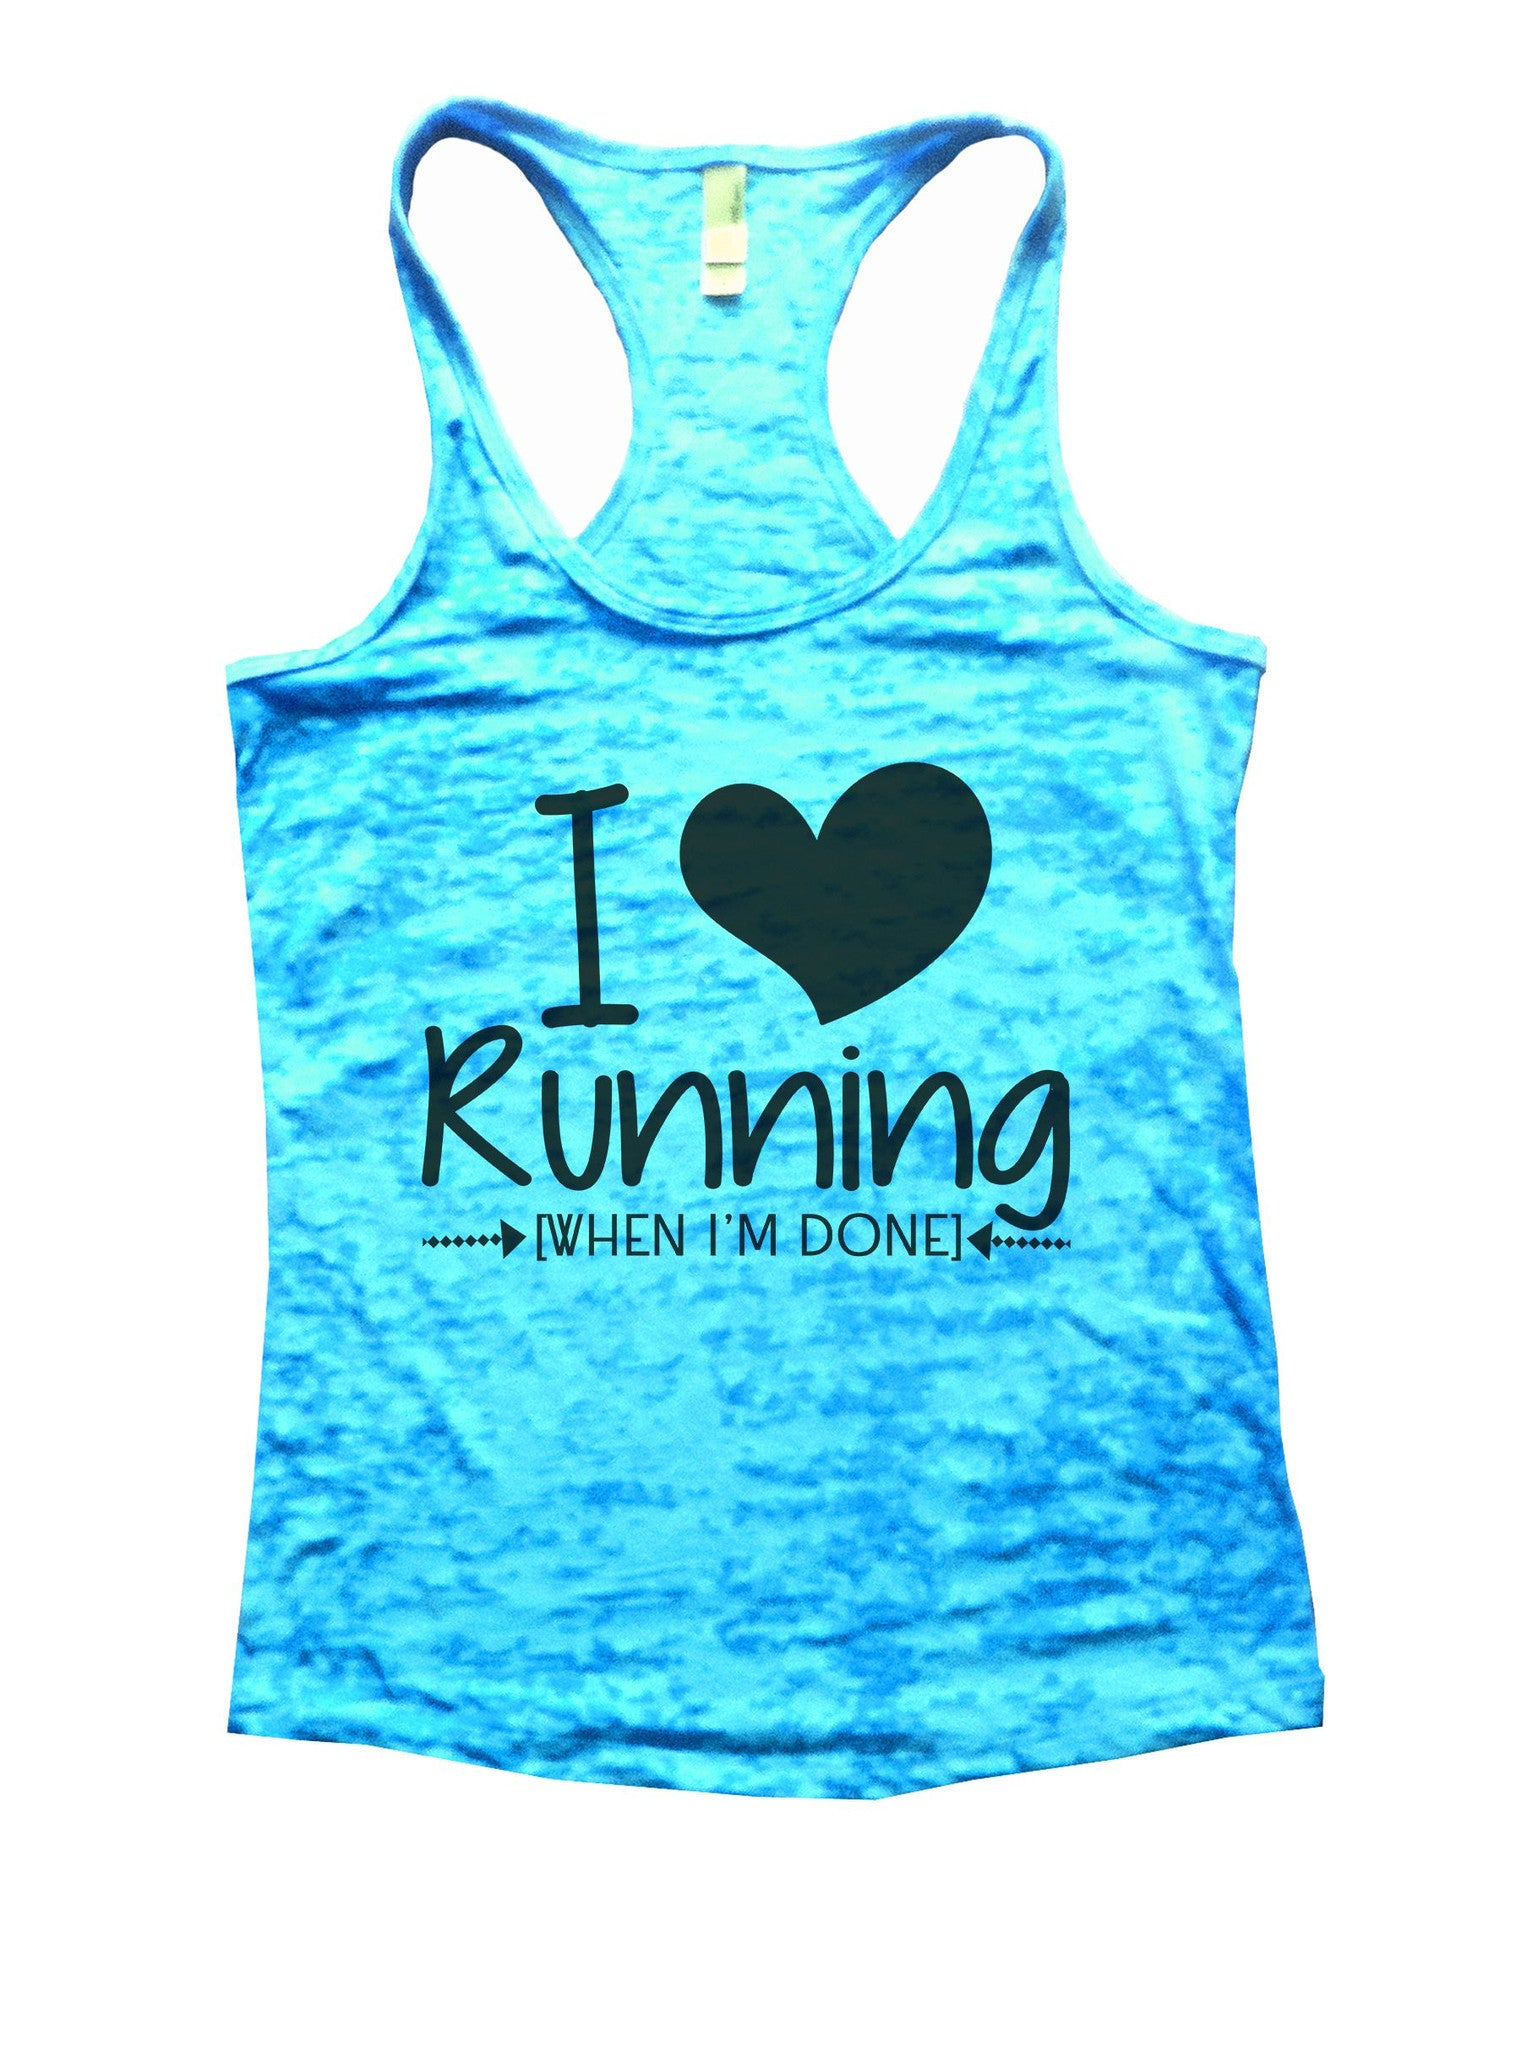 I Love Running [When I'm Done] Burnout Tank Top By BurnoutTankTops.com - 1013 - Funny Shirts Tank Tops Burnouts and Triblends  - 4